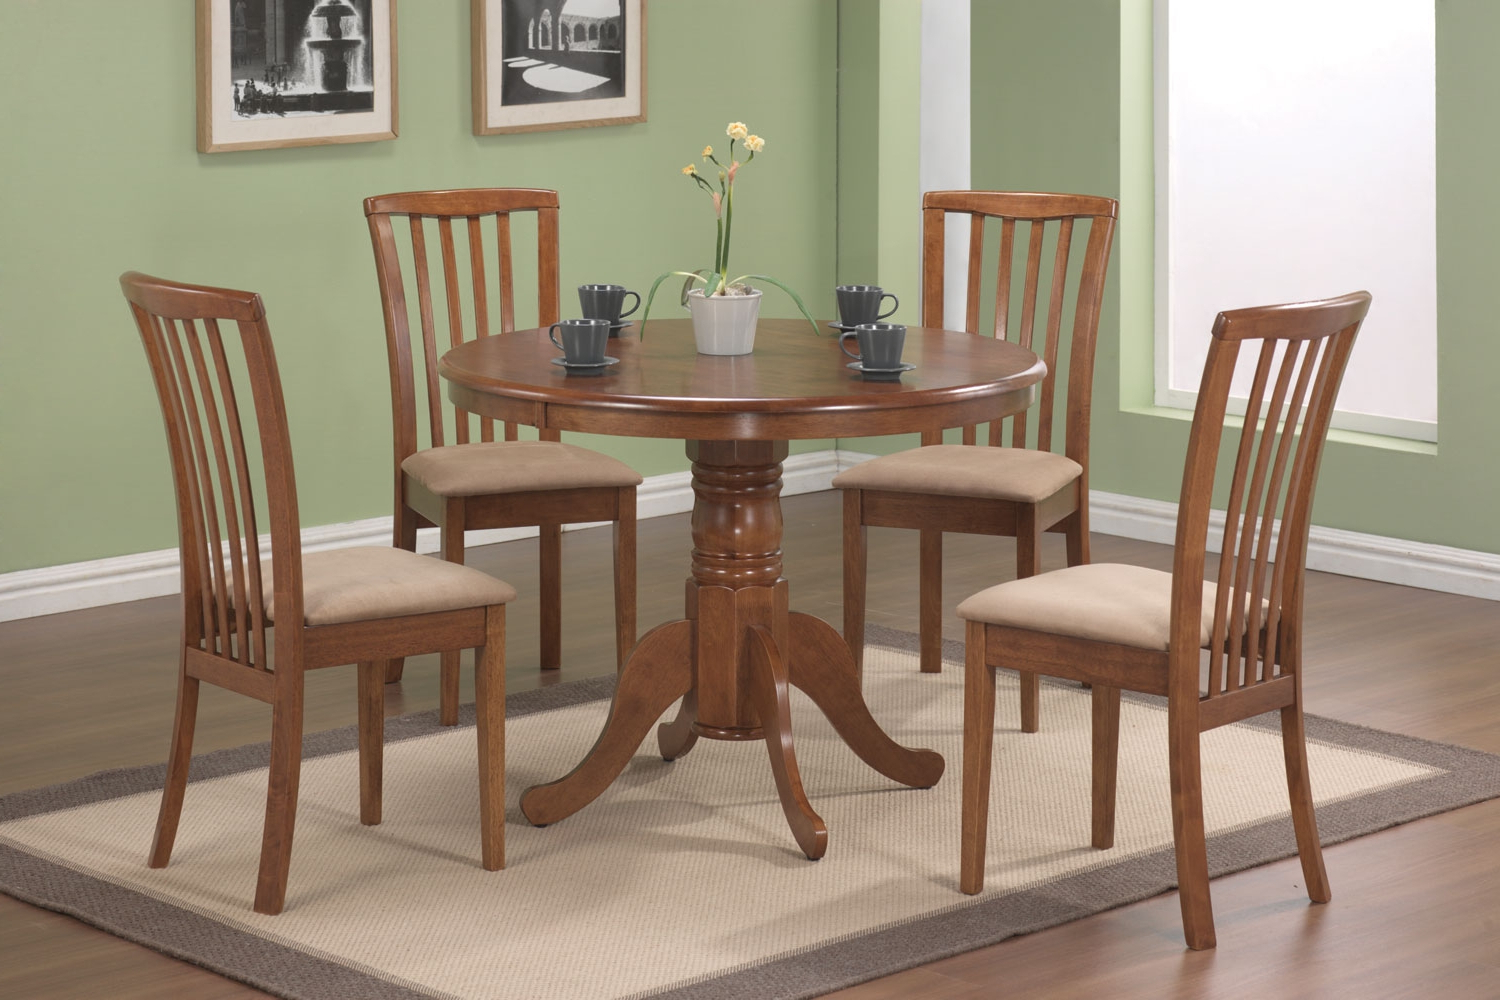 Cincinnati 3 Piece Dining Sets Within Most Recent Dinette Sets – Sims Furniture Company (View 8 of 25)